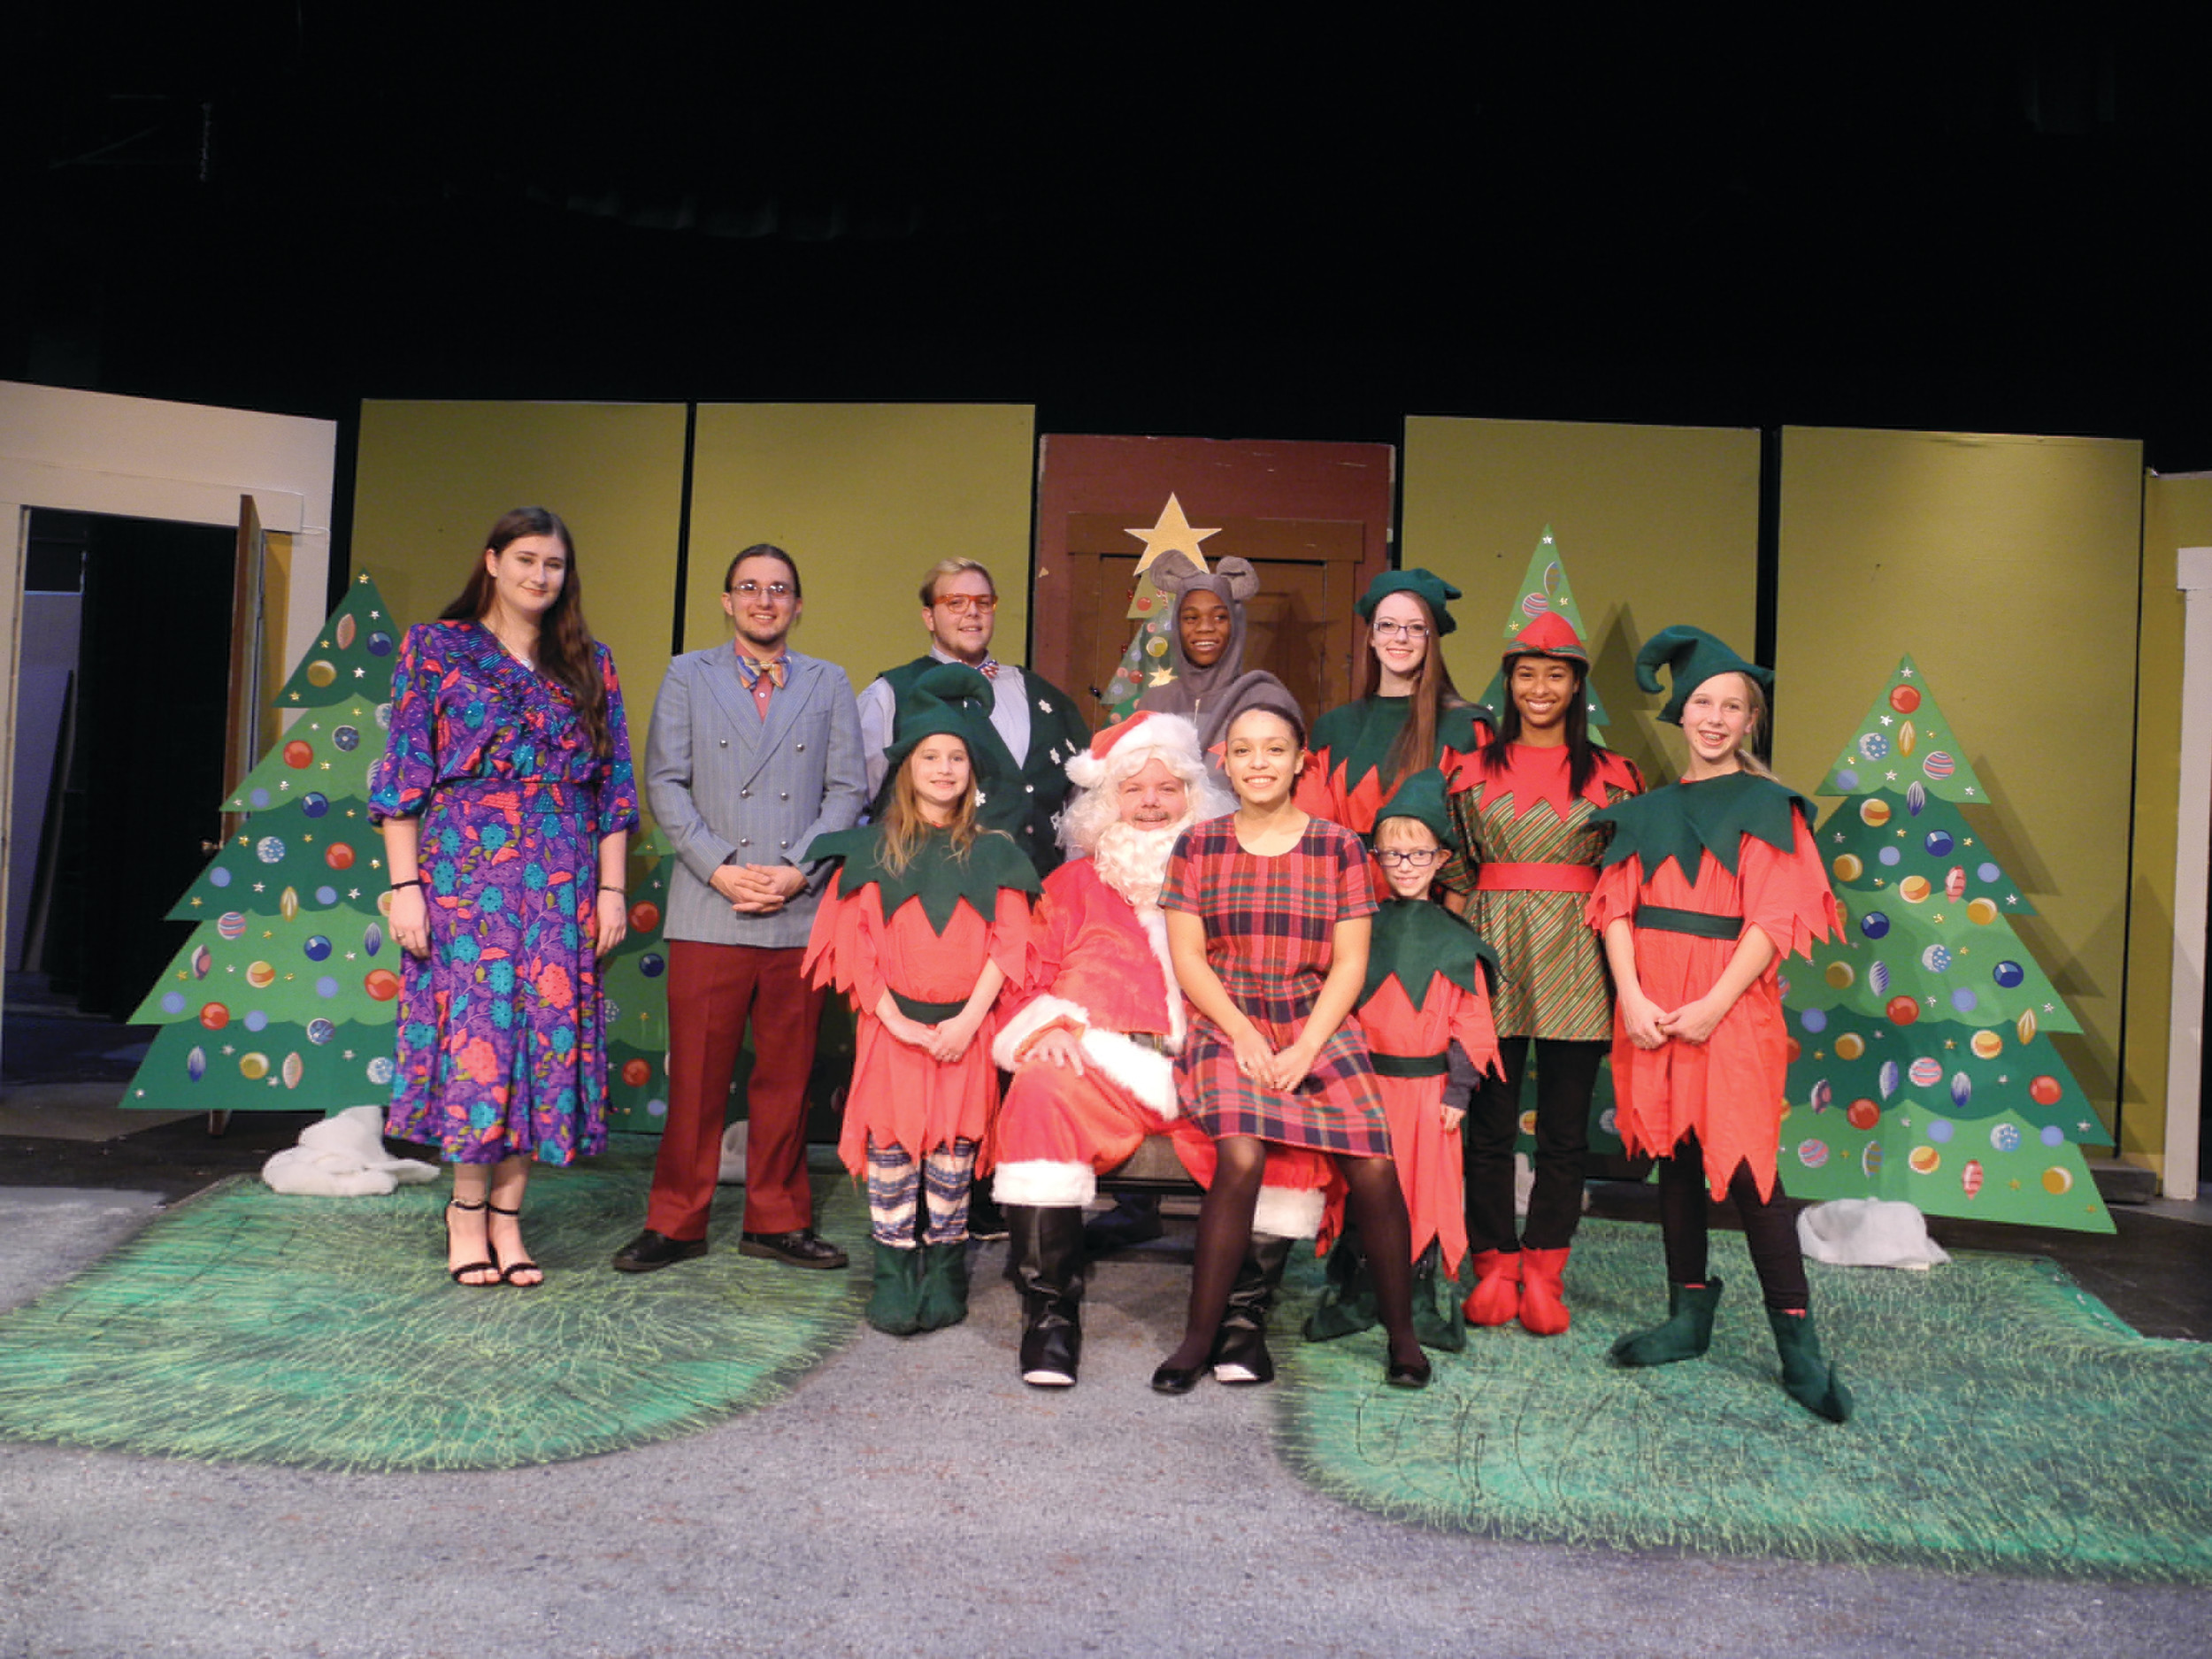 "IVY MOORE / SPECIAL TO THE SUMTER ITEM  The cast of Sumter Little Theatre's holiday offering, ""'Twas the Night Before Christmas,"" takes a break from a recent rehearsal for a group photo. From left, back row are Lauren Graves, Kevin Cooper, Colby Rearden, Carlos Waters, Lauren Carneal, Taylor Lenoir and Sylvia Hunt. Front row, from left are Shelly Greco, John Michael Osteen, Jayde Torres and Nate Martin. ""'Twas the Night Before Christmas"" opens Thursday at Sumter Little Theatre."